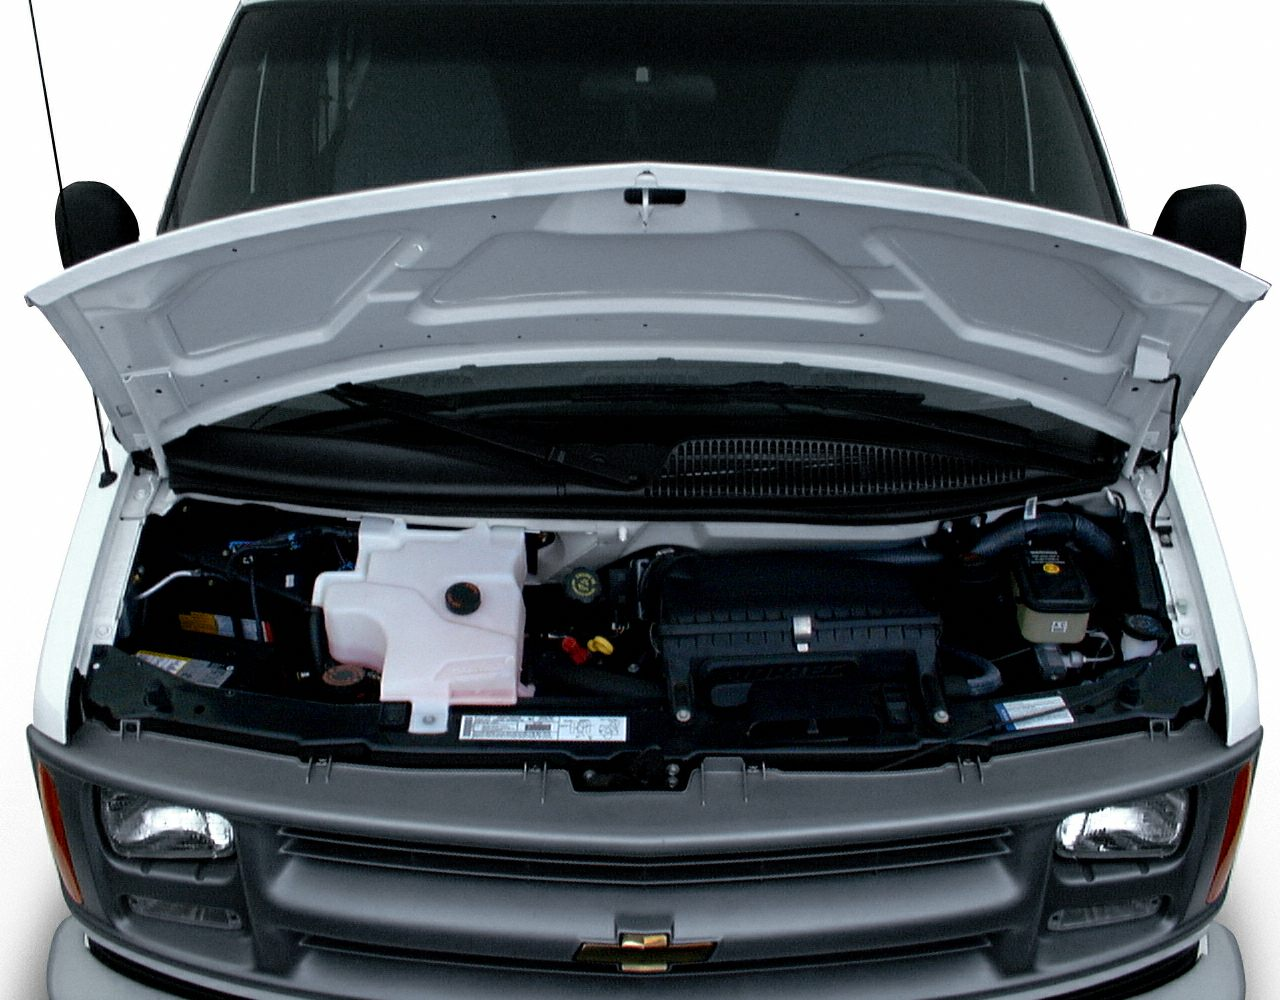 hight resolution of 2000 chevrolet express exterior photo